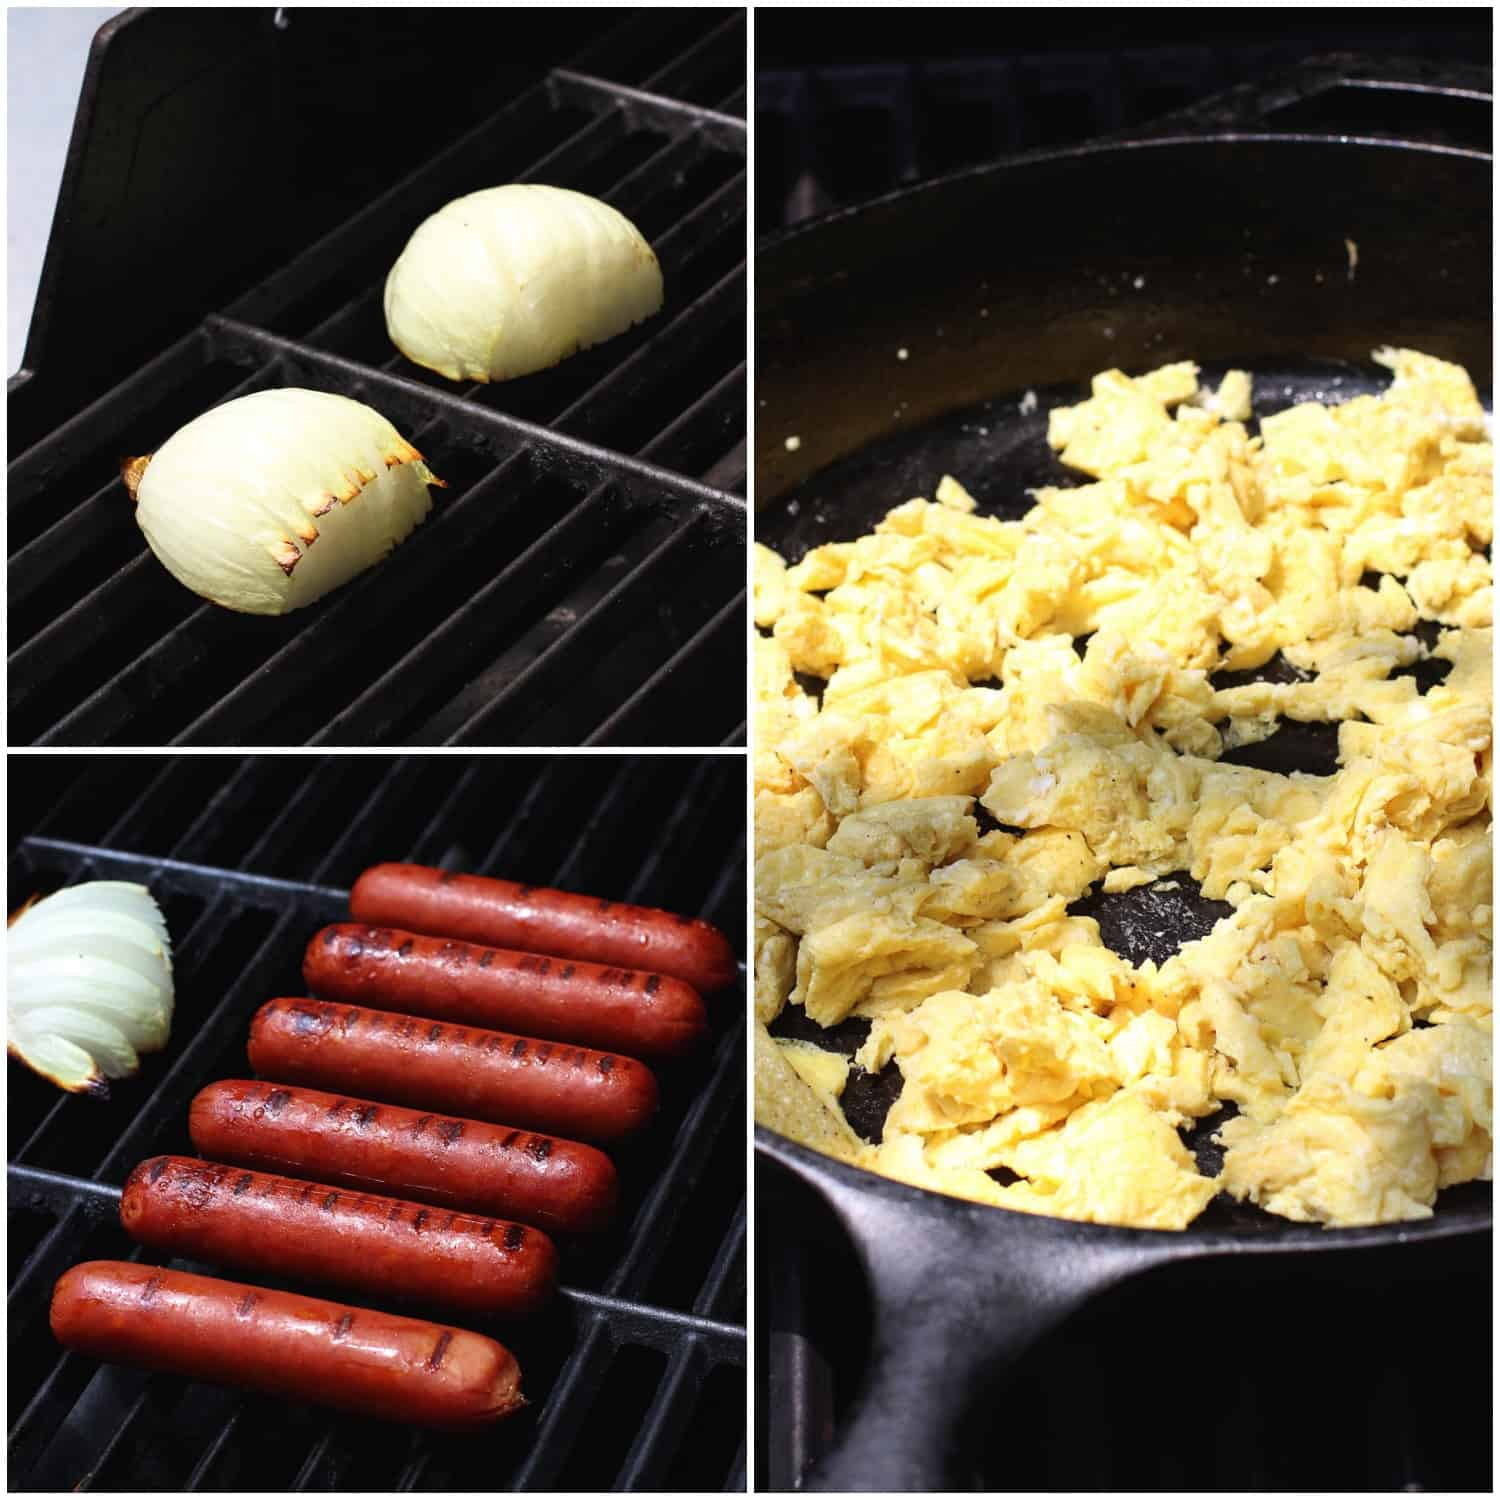 Enjoy breakfast made entirely on the grill with this grilled smoked sausage breakfast egg scramble! A cast iron pan and the grill grates are all you need to prepare crispy potatoes, grilled onion, scrambled eggs, and perfectly grilled smoked sausage links for a satisfying, savory breakfast the whole family will love.